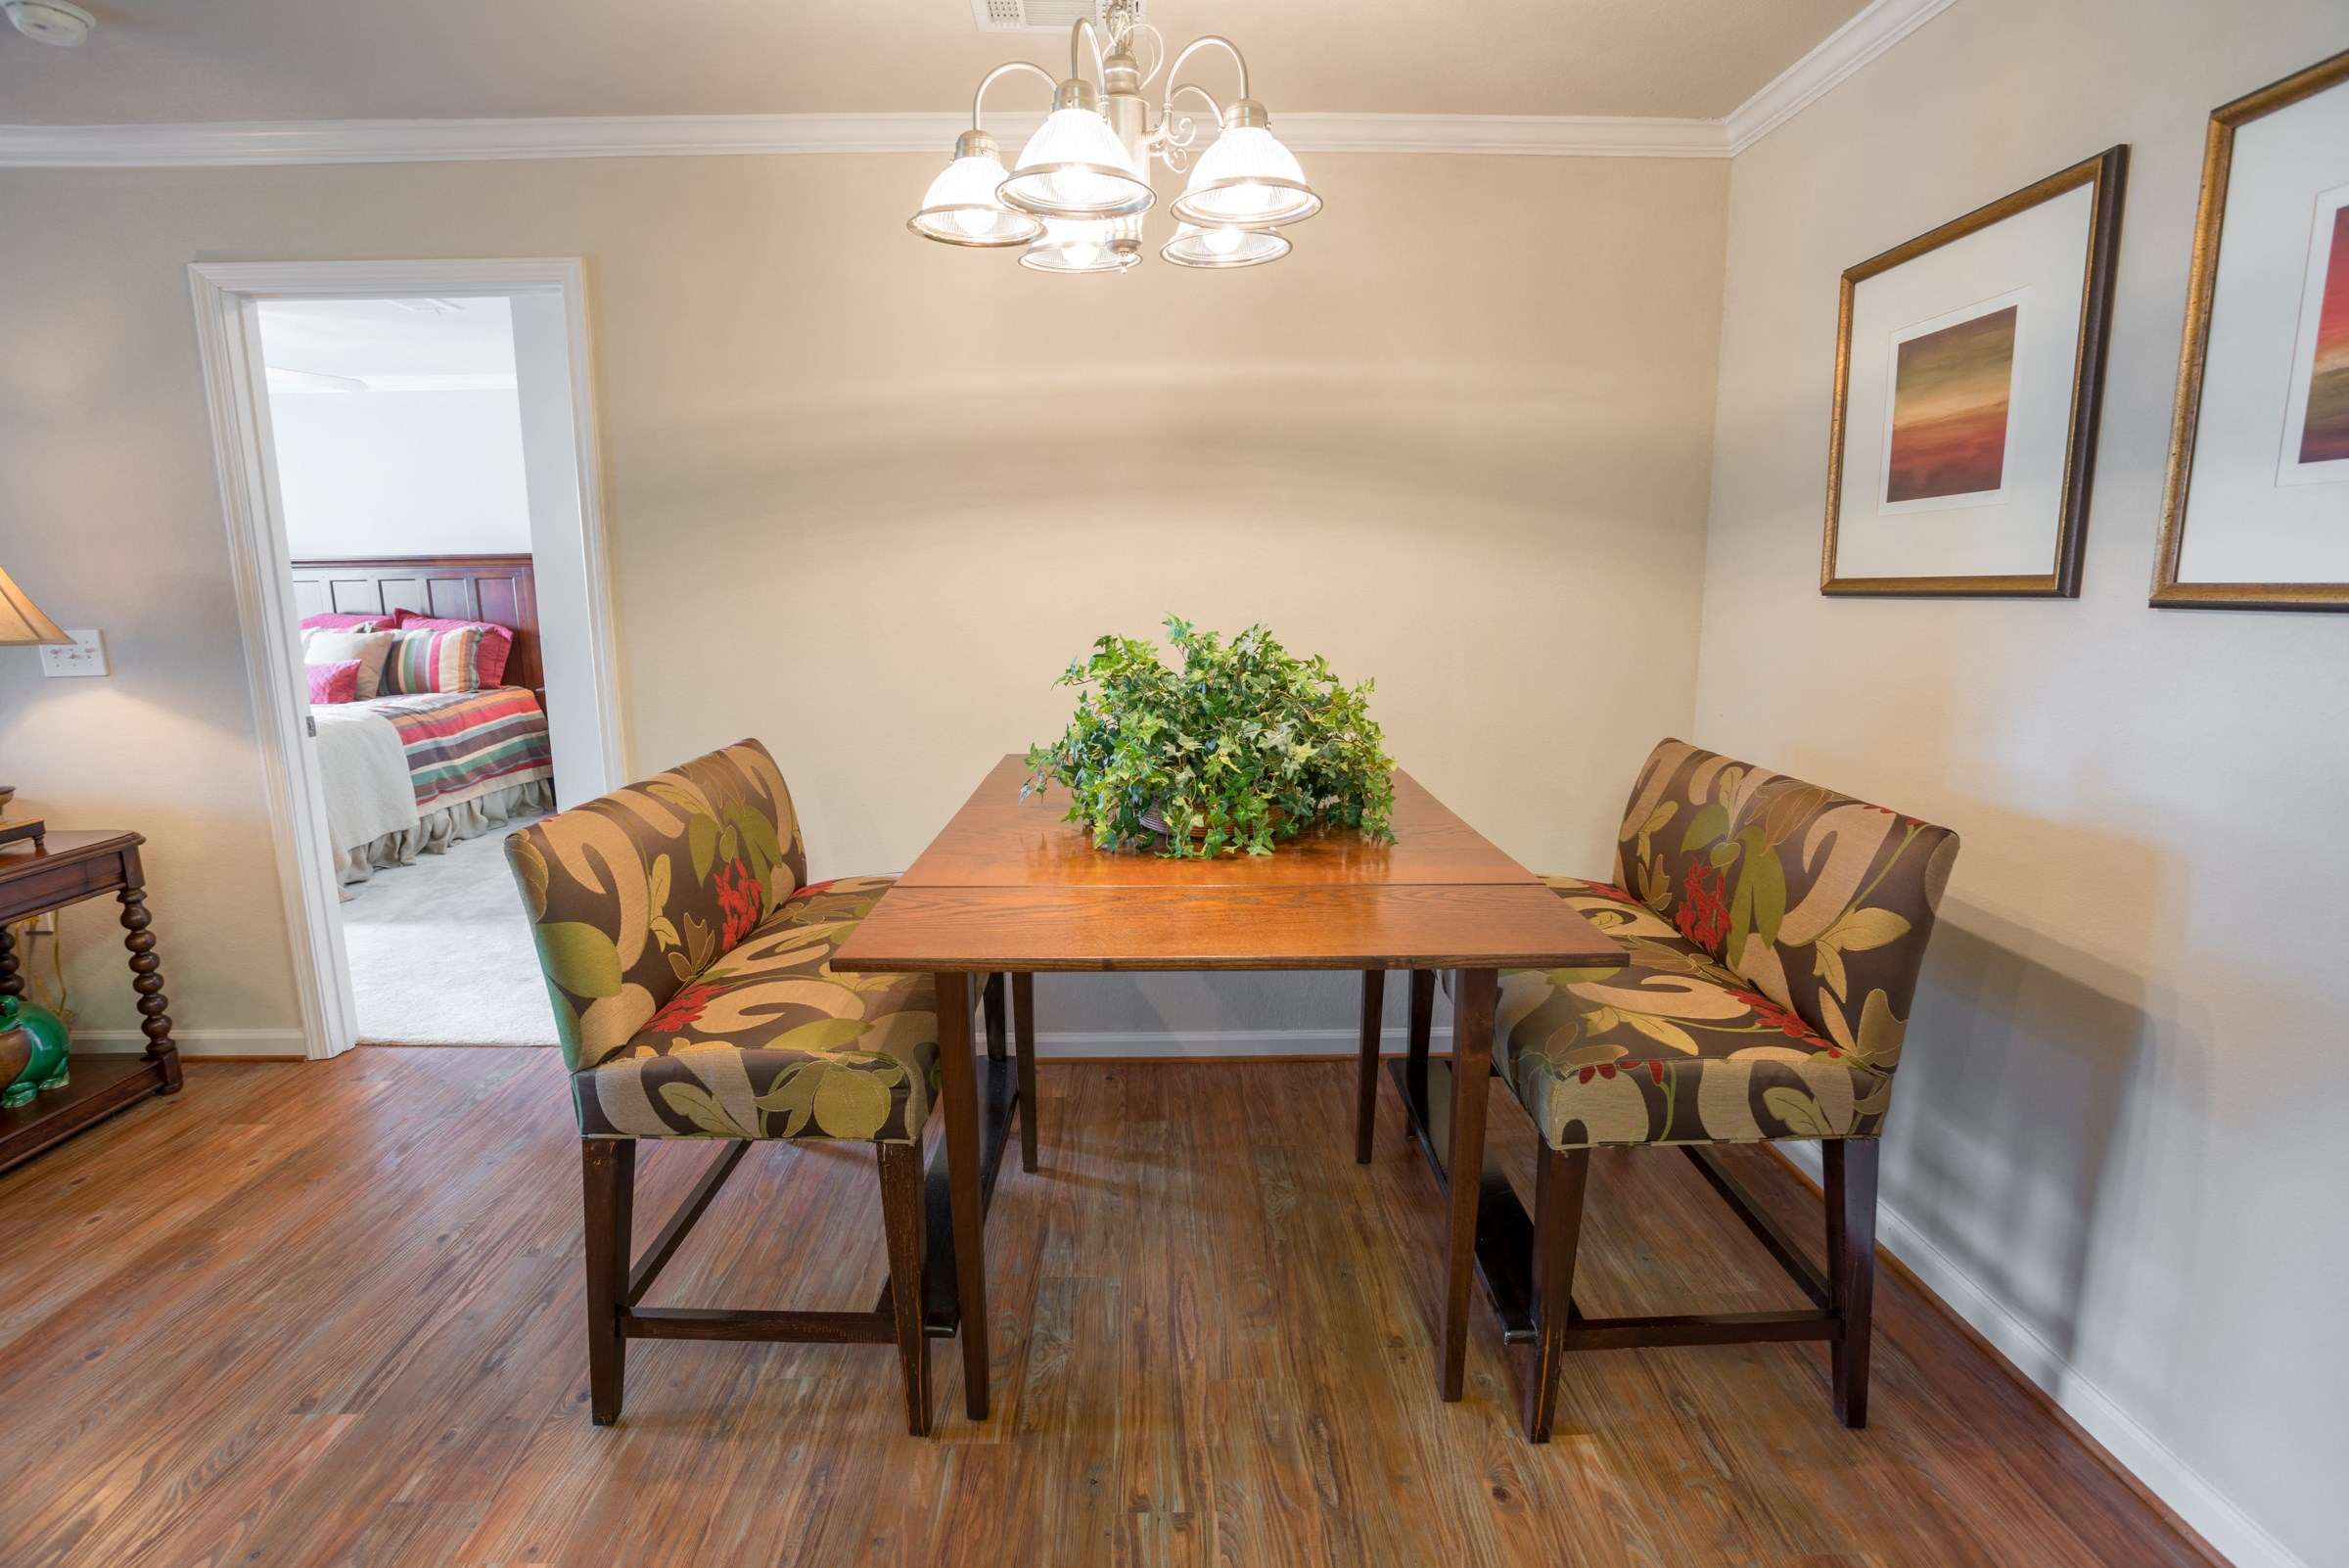 Dining Area at Verandas at Taylor Oaks Apartments in Montgomery, AL